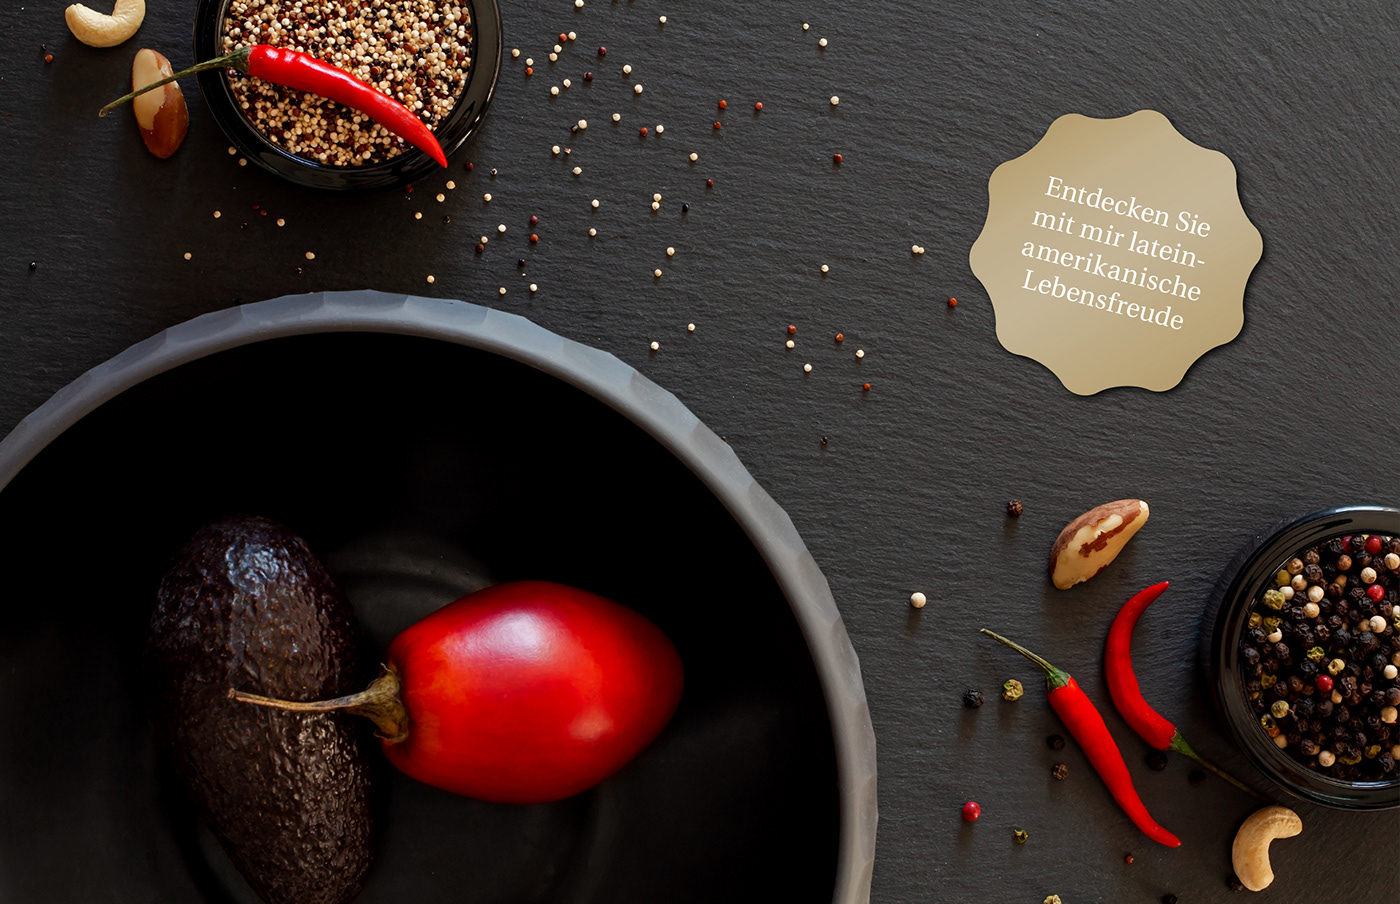 chocolate Coffee exotic Food  fruits restaurant South America cooking culture Latin America